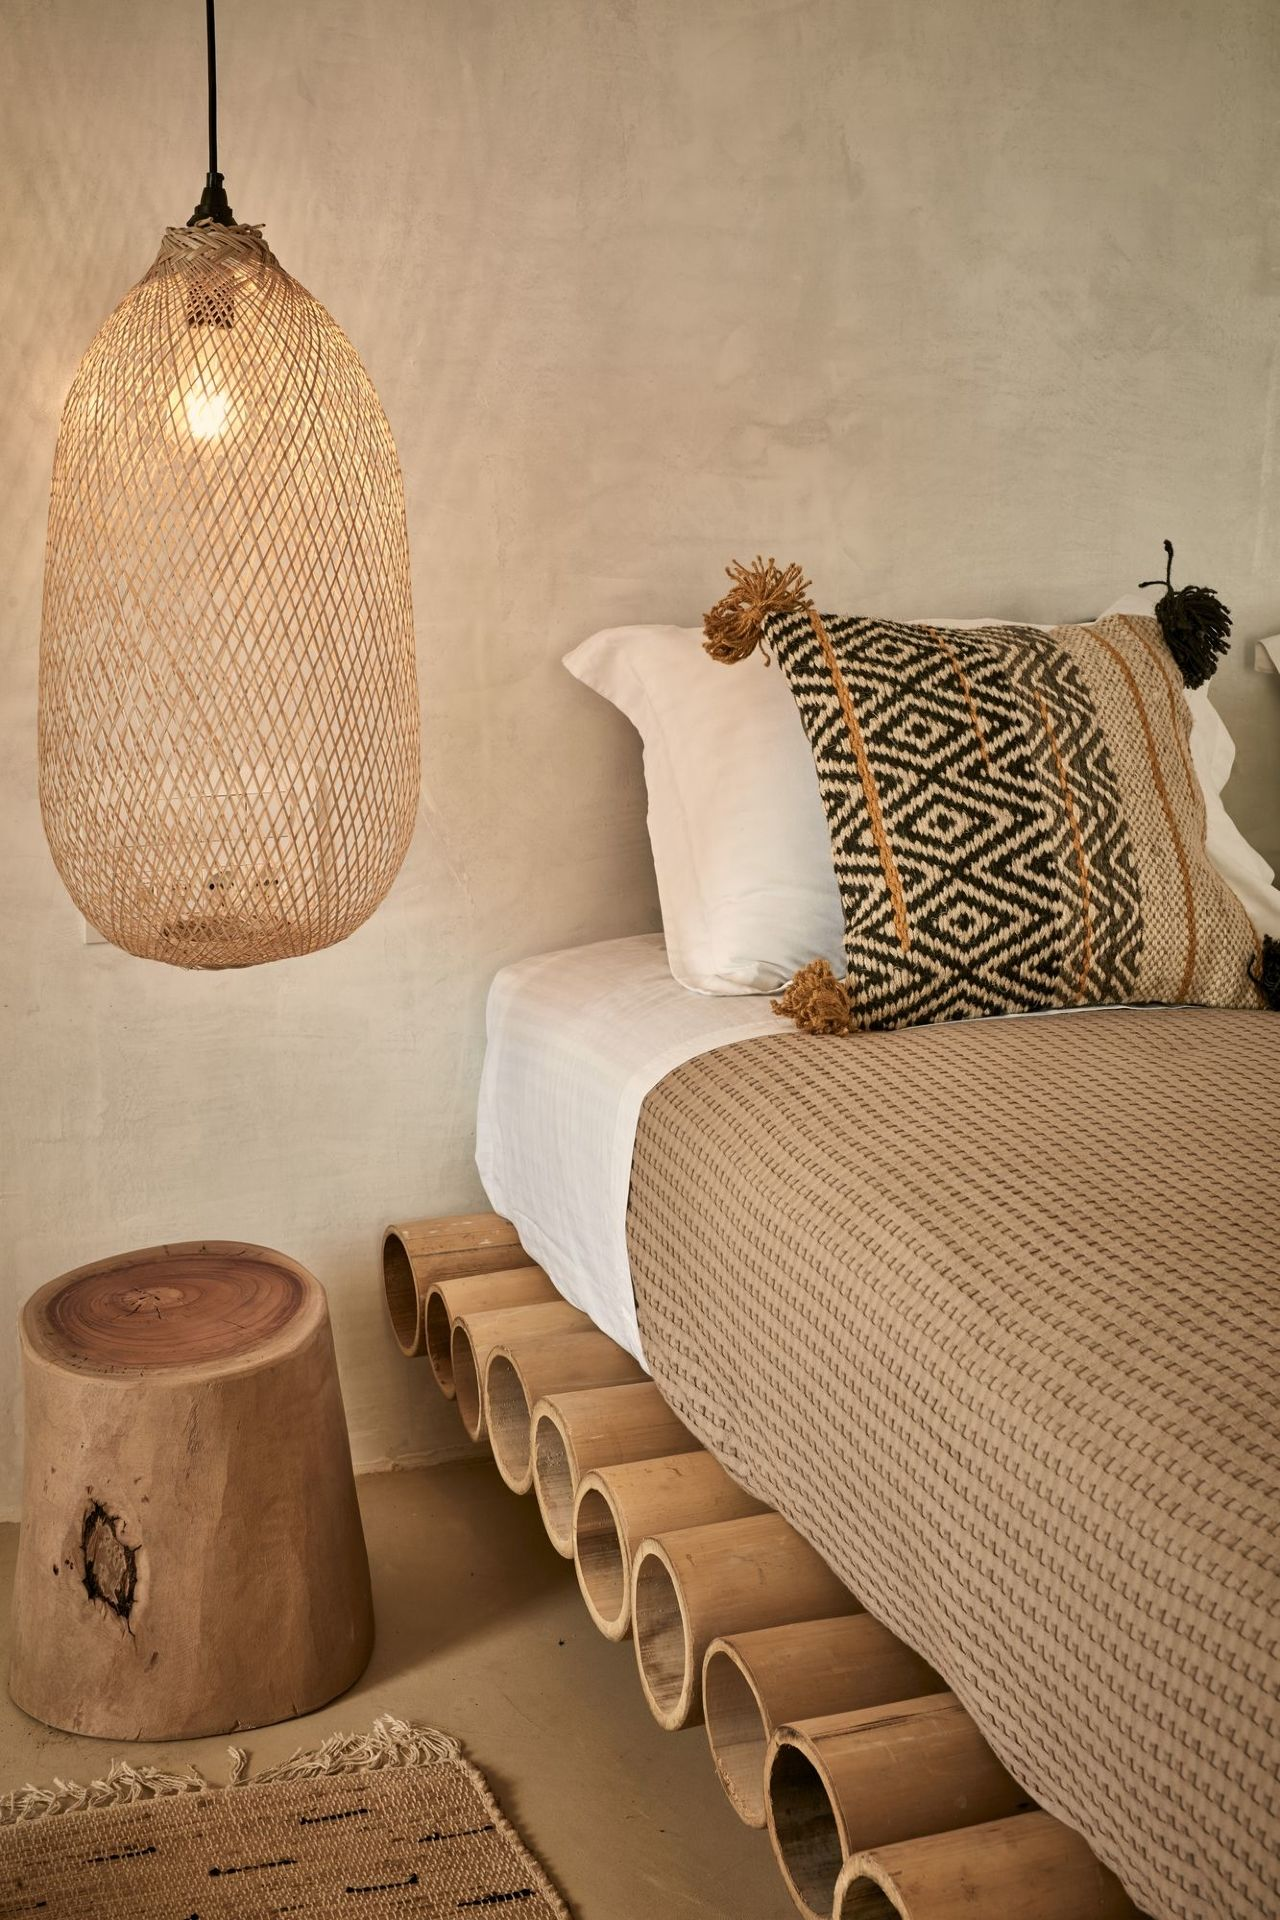 bamboo bed platform, brown floor, cream wall, rattan rug, rattan pendant